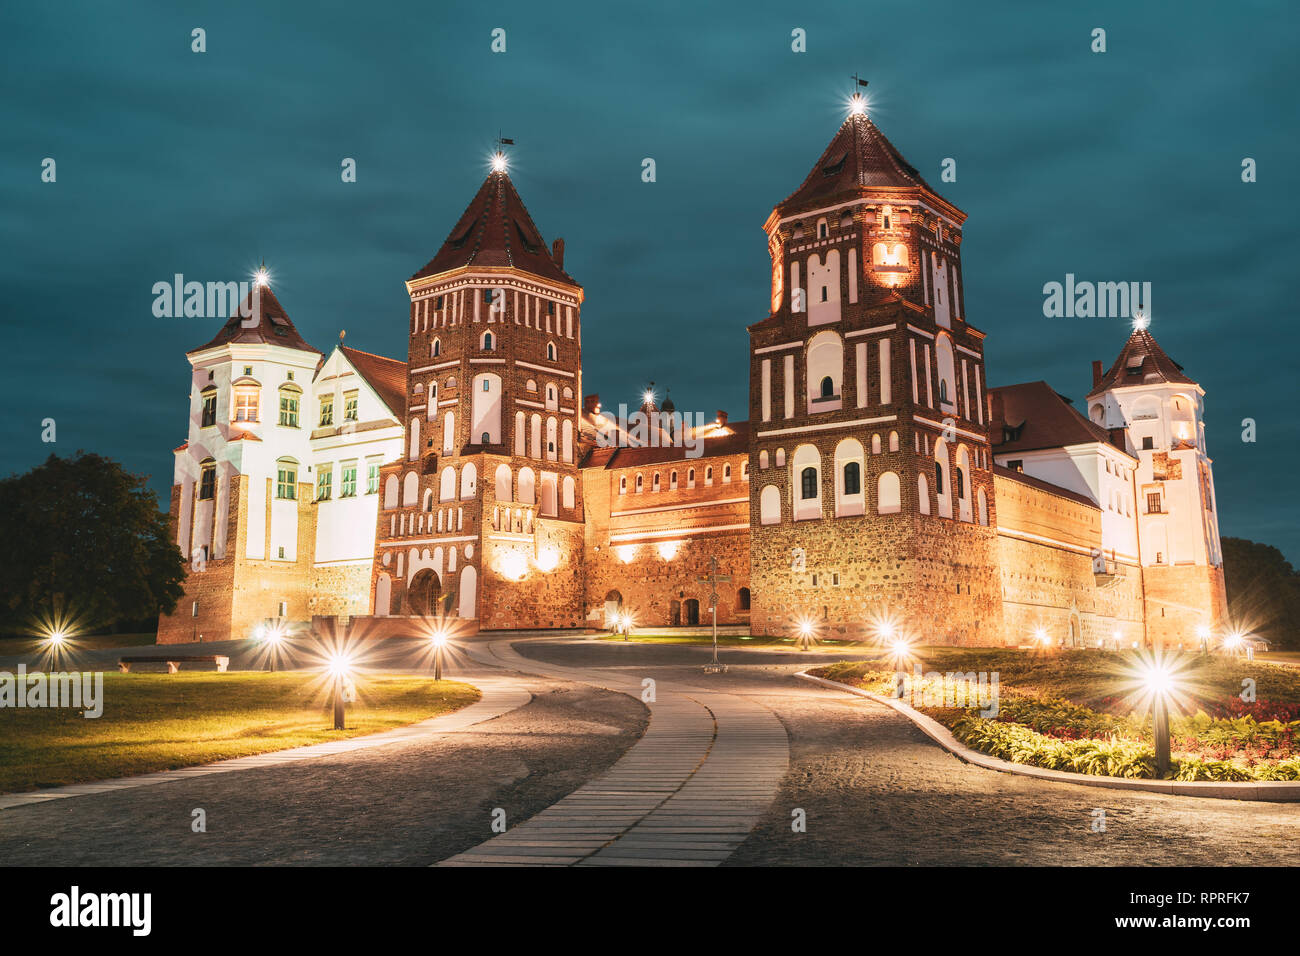 Mir, Belarus. Mir Castle Complex In Evening Night Illumination Lighting. Famous Landmark. UNESCO Heritage. Architectural And Cultural Heritage. - Stock Image